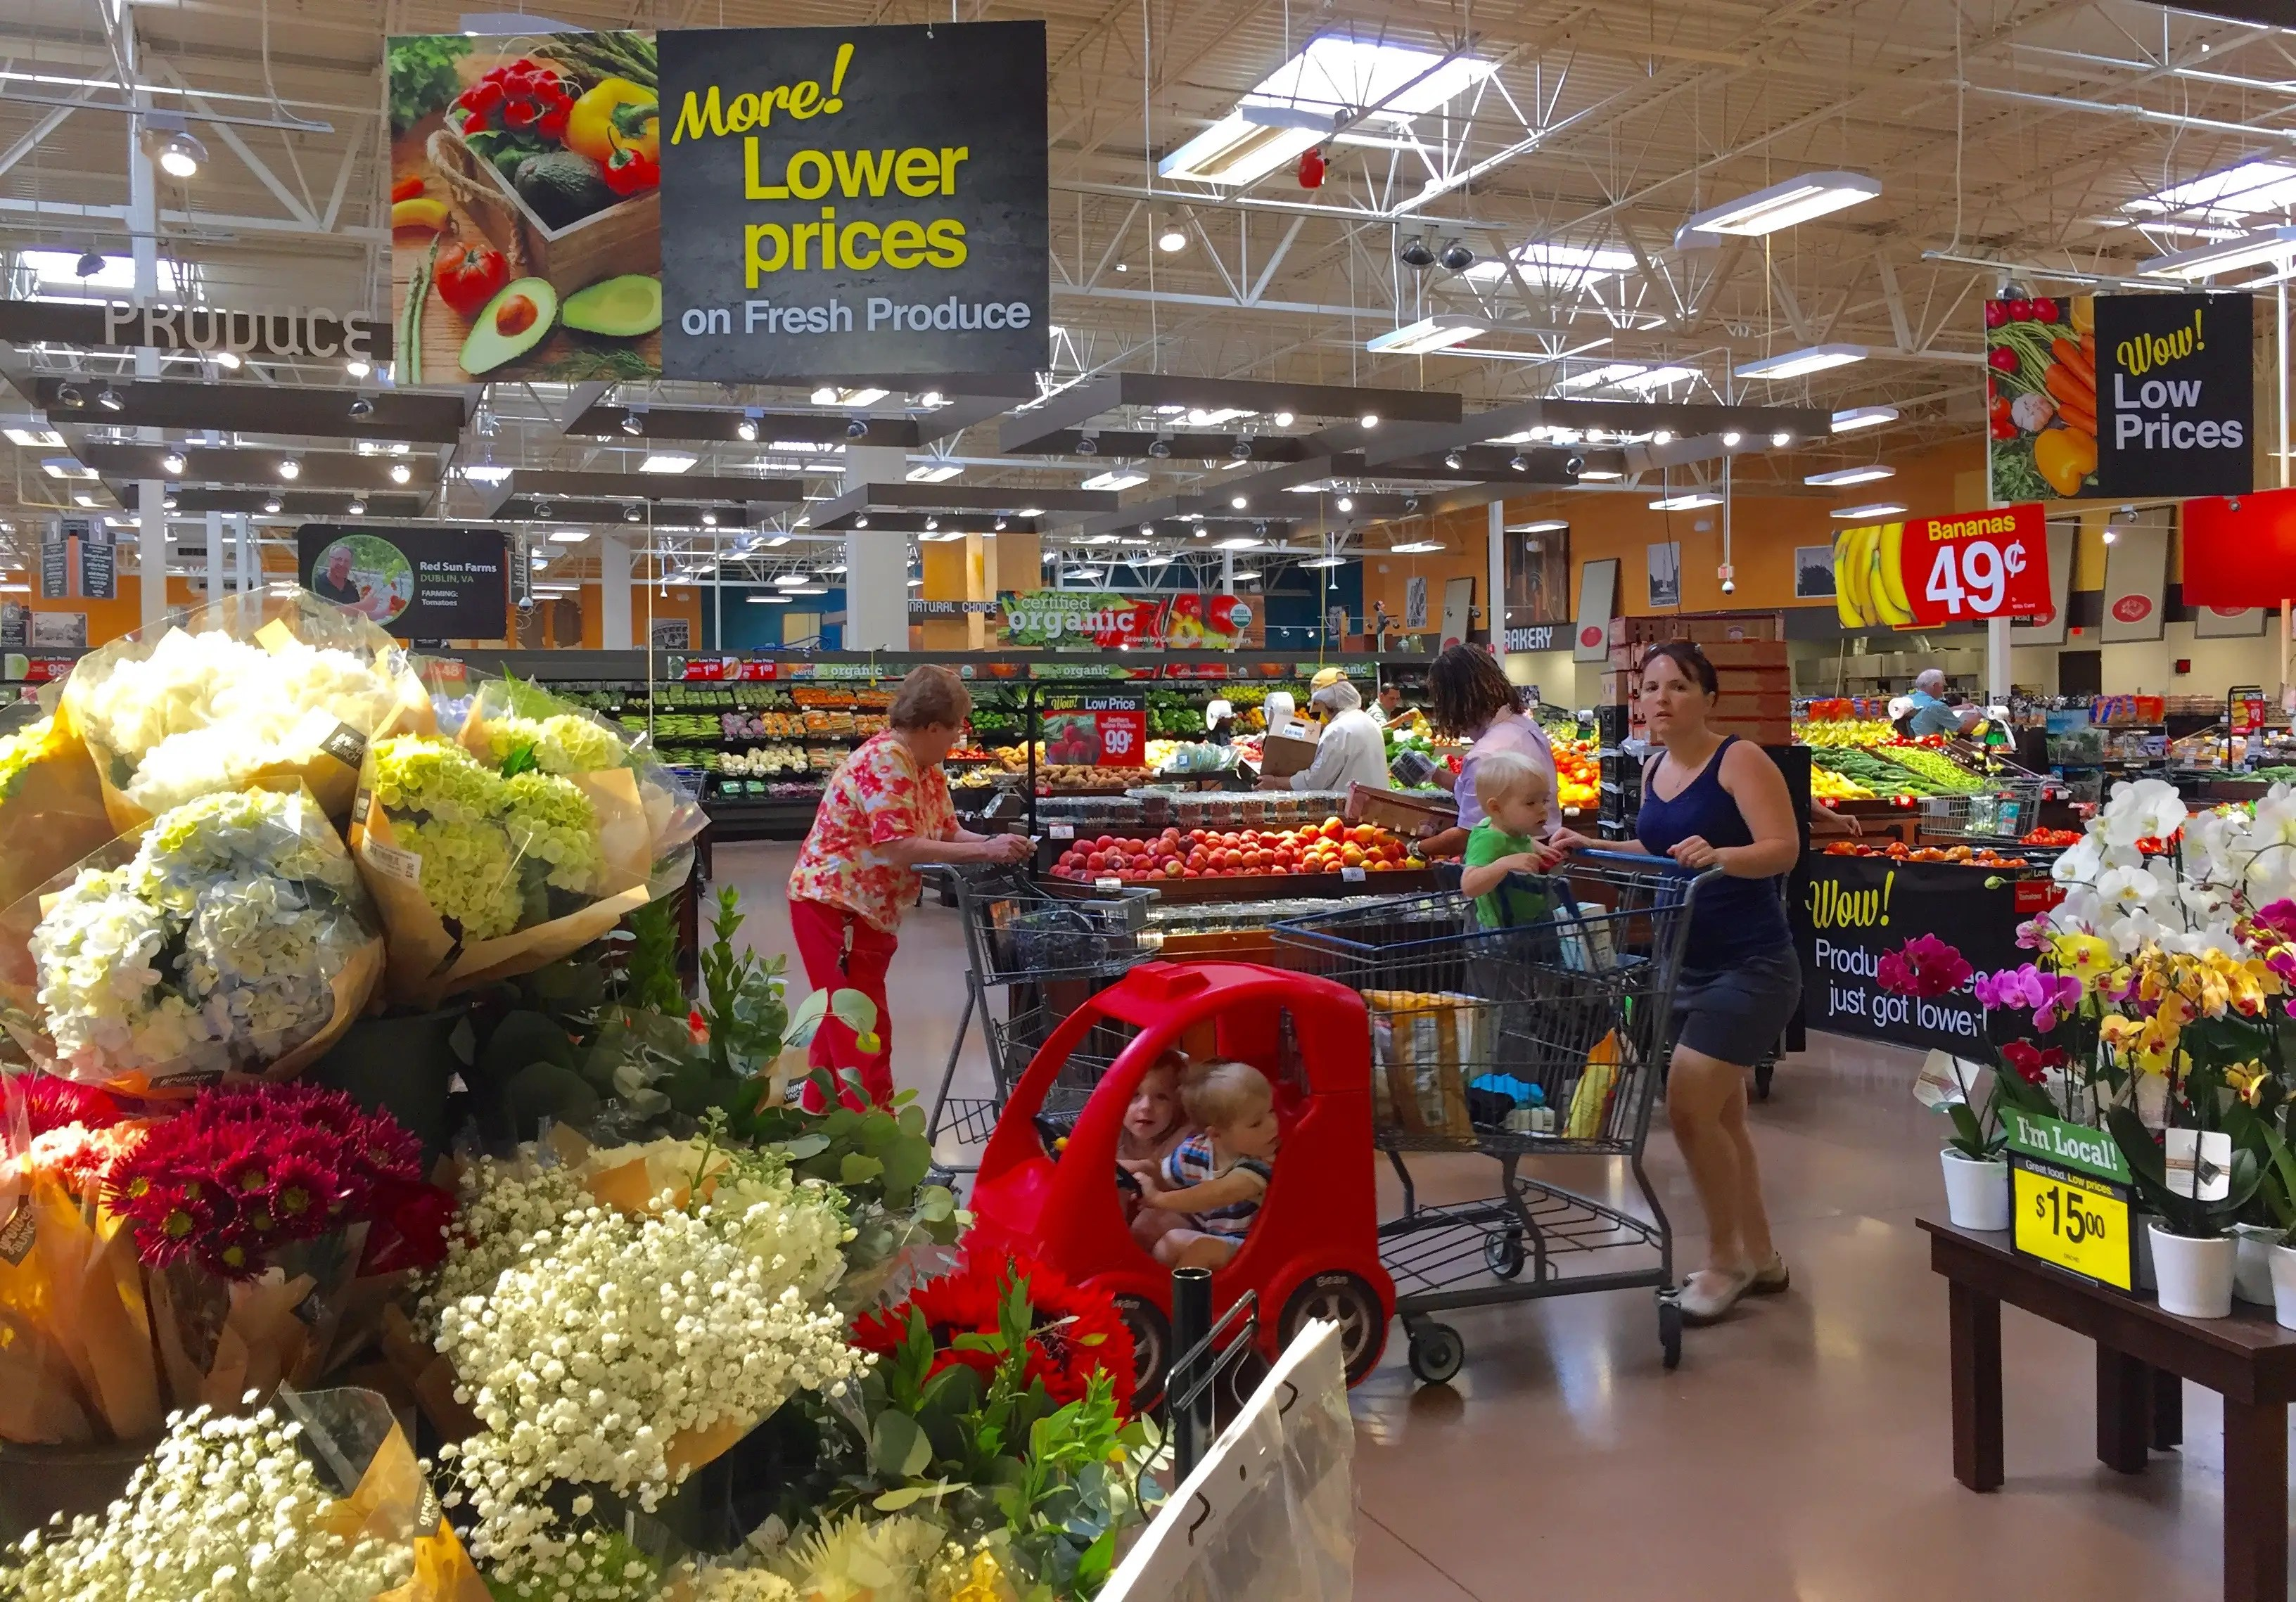 Stepping inside, shoppers are greeted by the fresh-produce department.